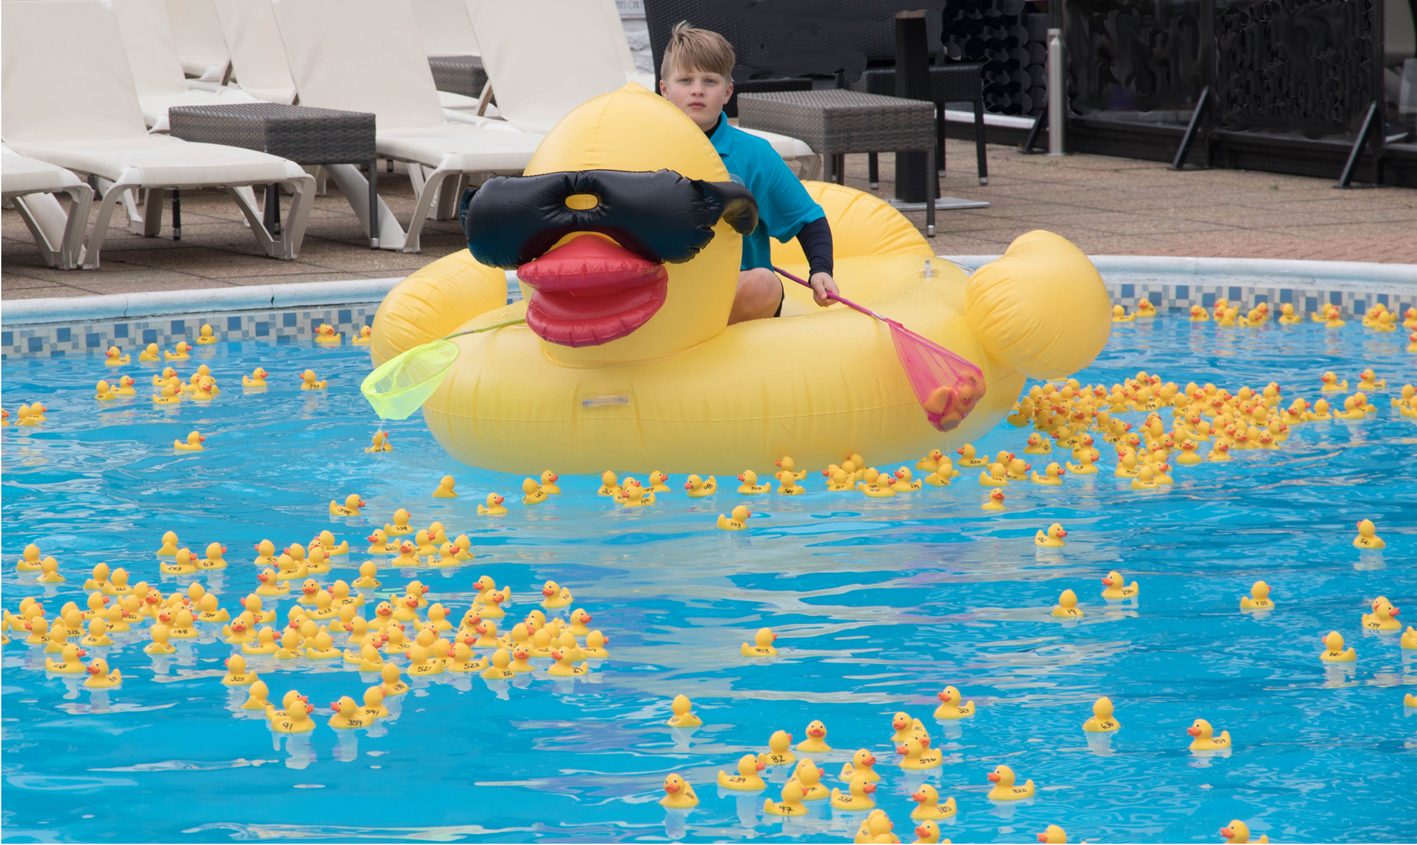 Hotels raise 3590 with giant net a duck party dorset for Pool floats design raises questions